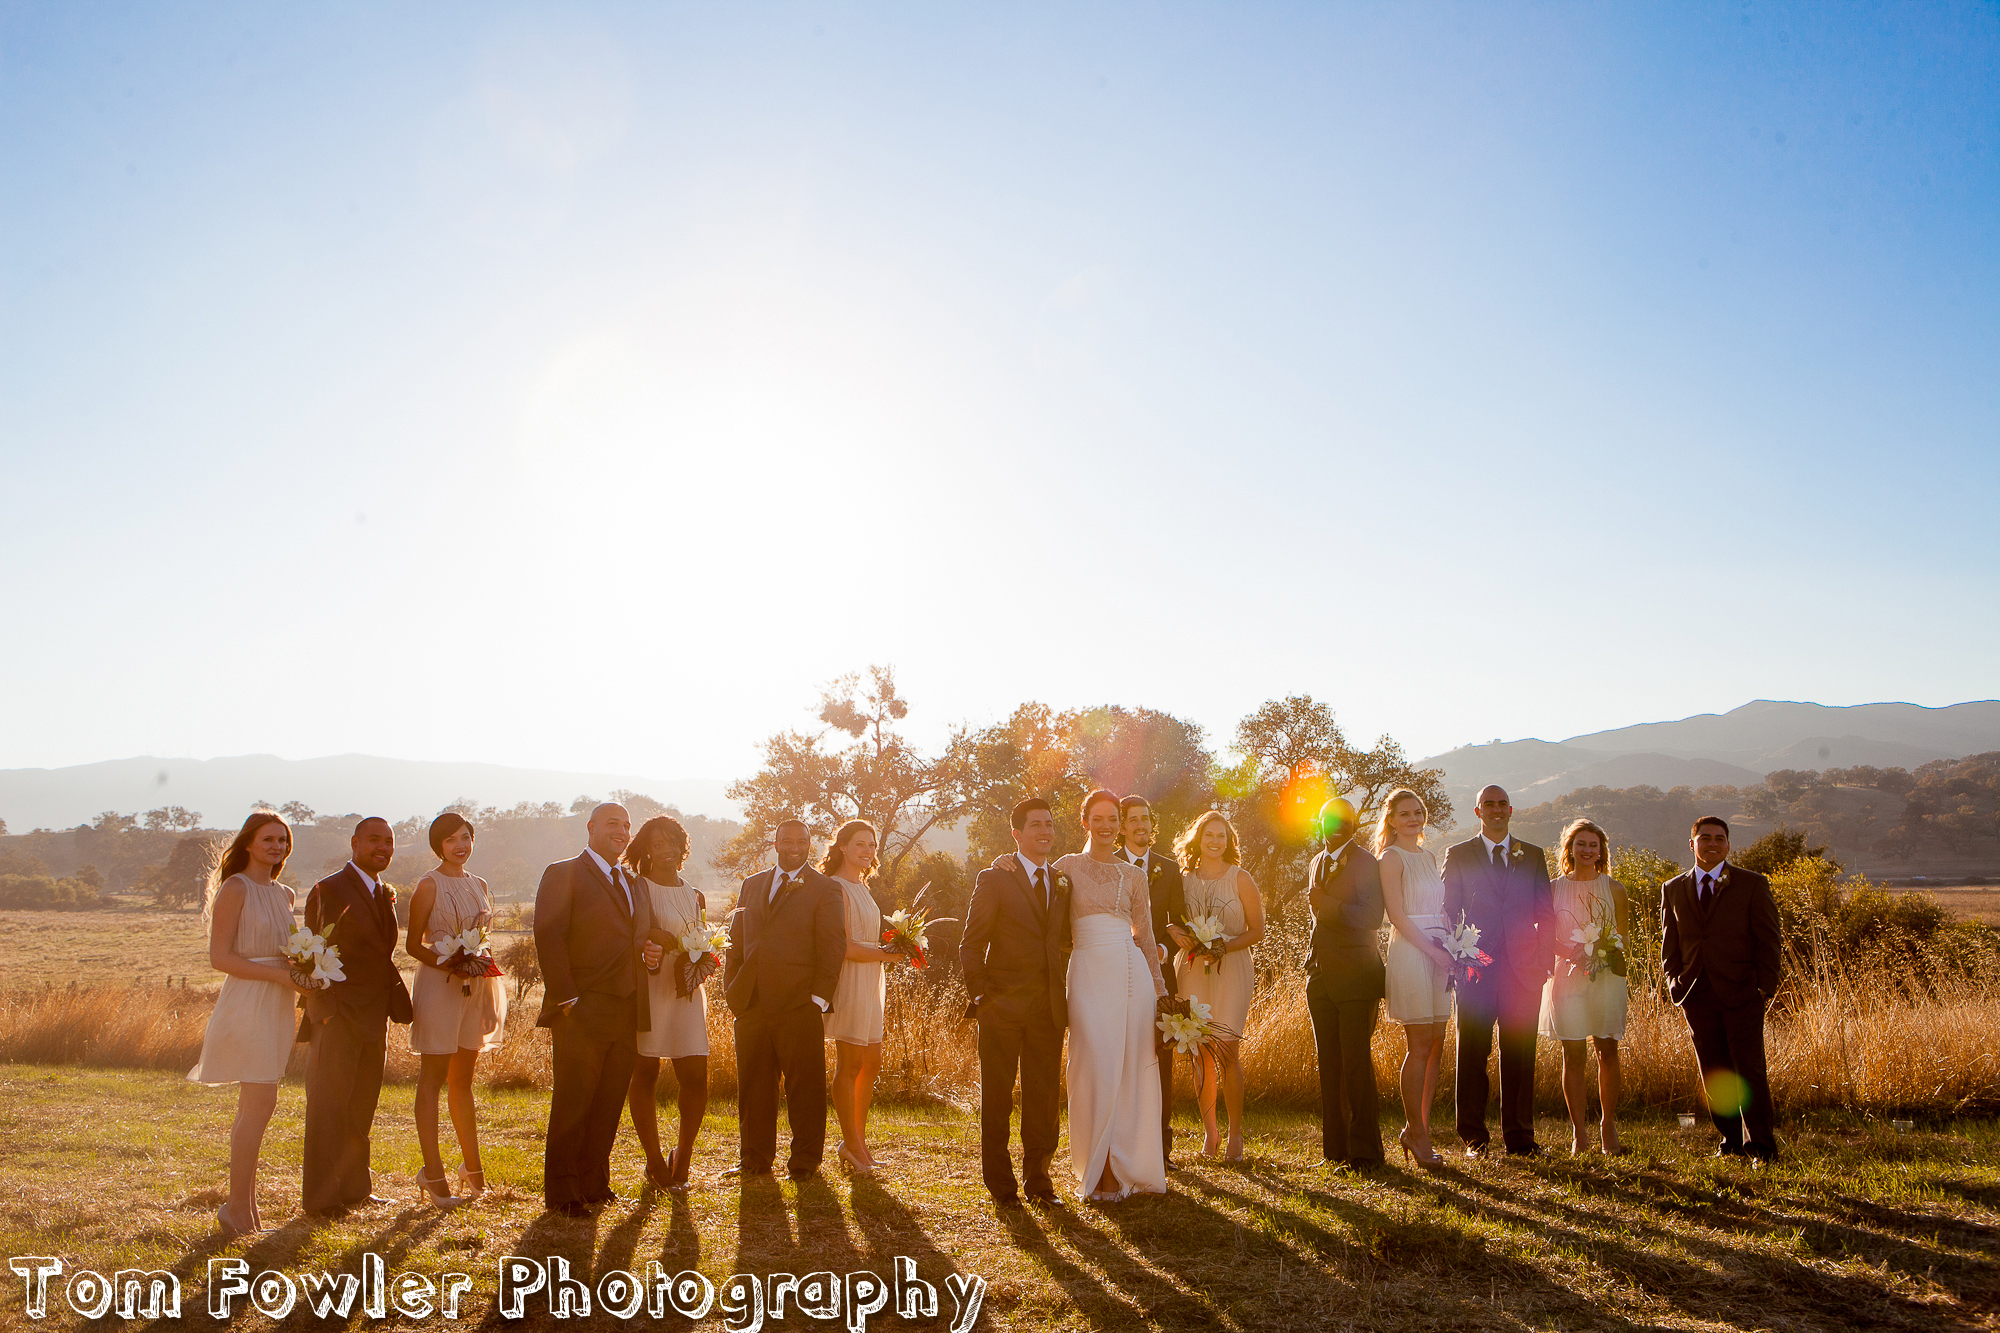 Santa_Margarita_Ranch_Wedding_TomFowlerPhotography_Wedding_Photographer-21